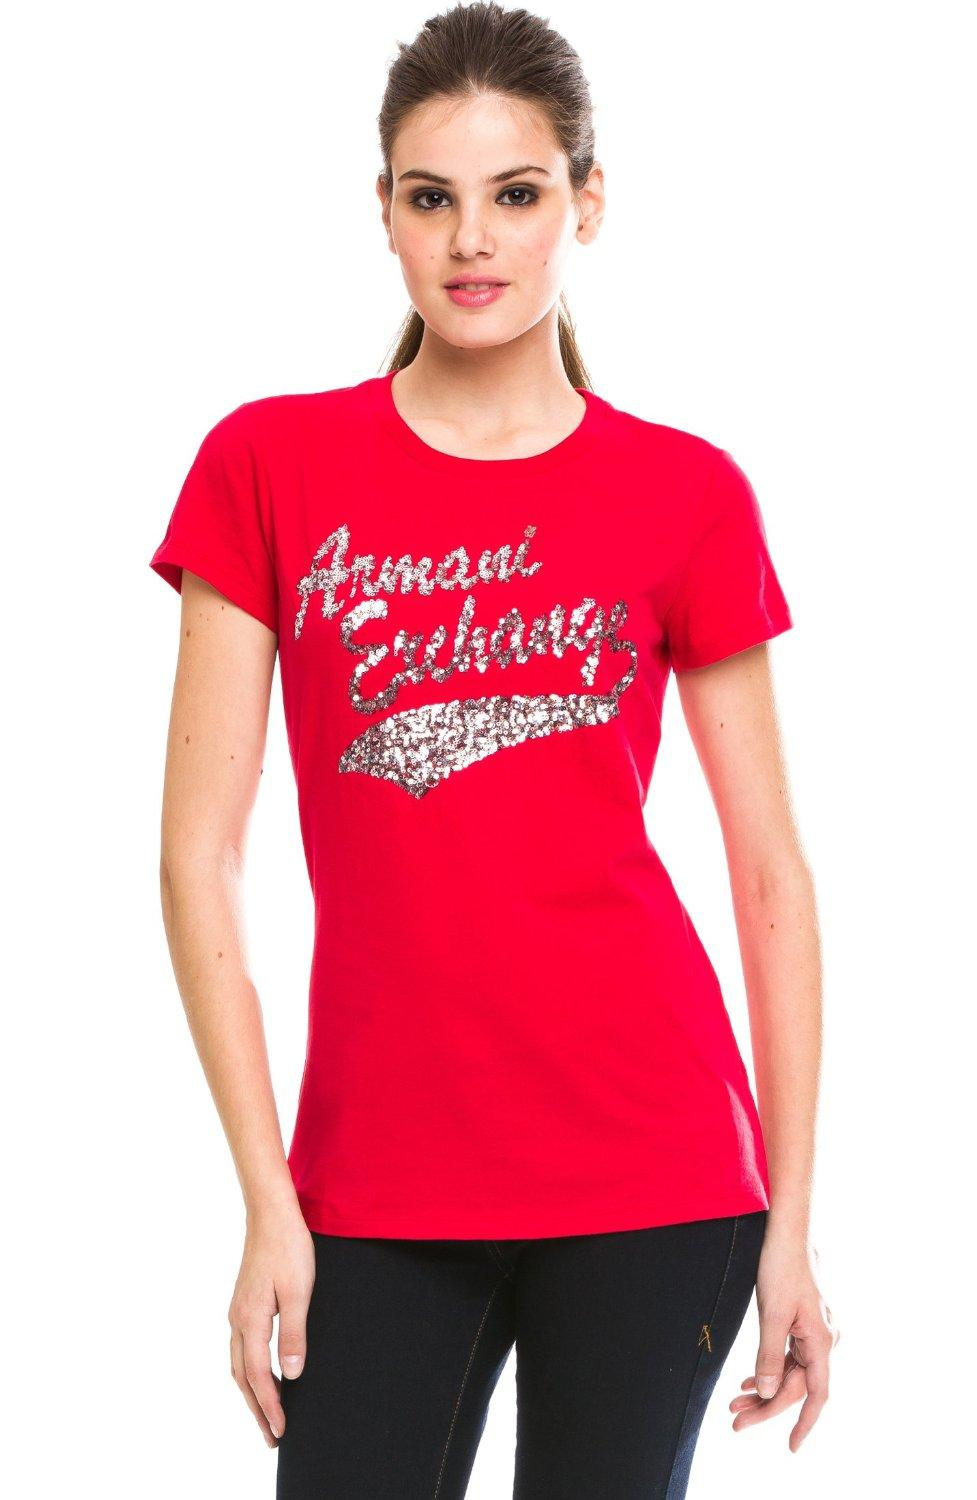 Discounted armani exchange stacked script t shirt for Armani exchange t shirts wholesale